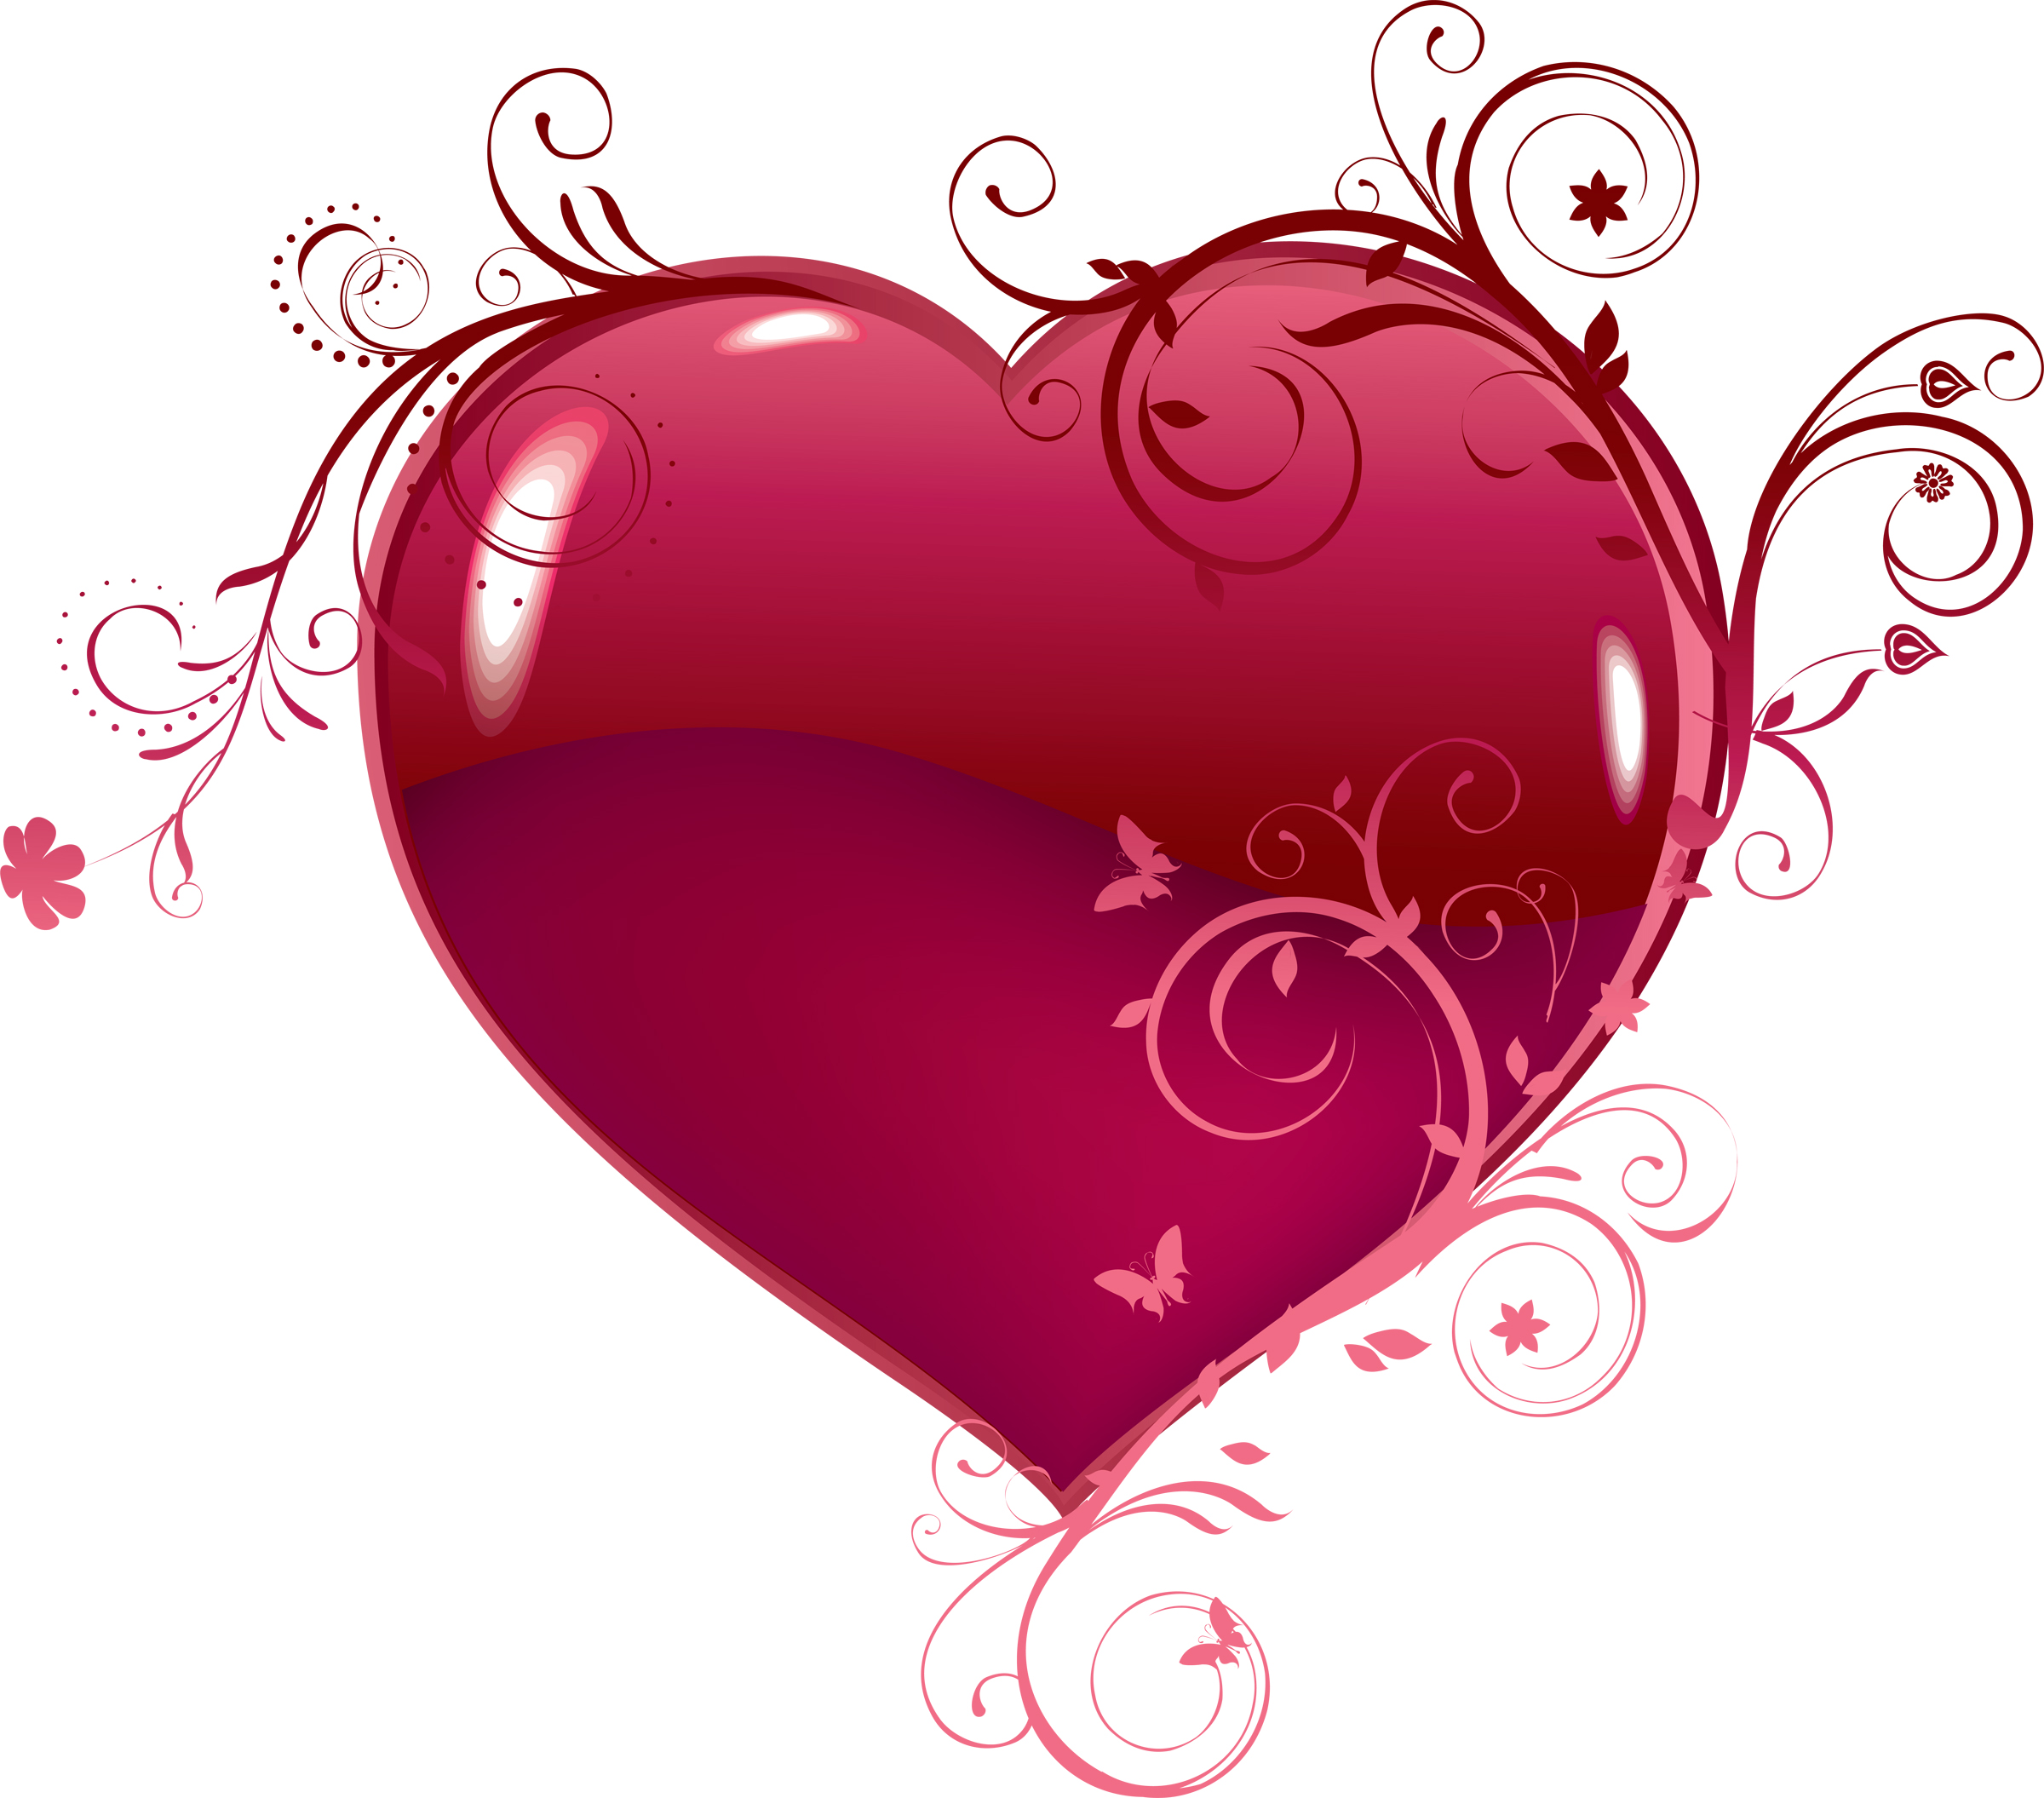 heart-with-flourished-edges